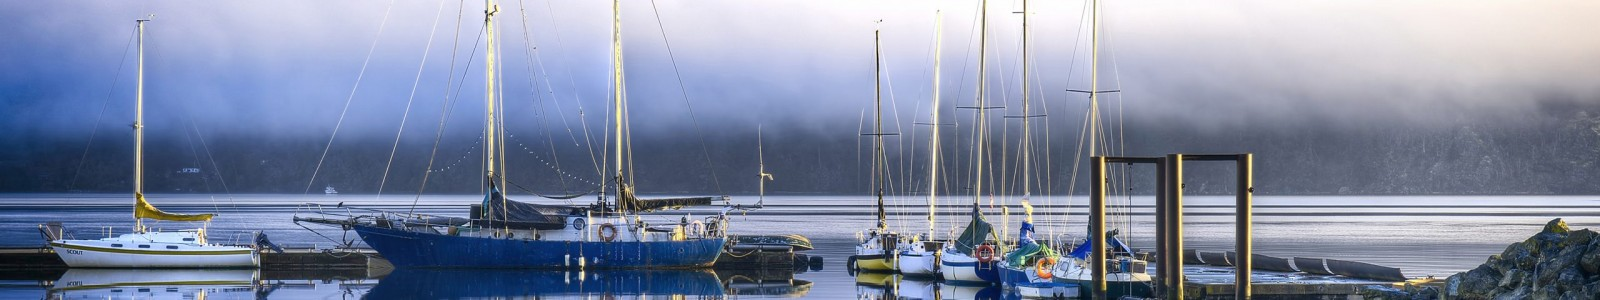 cowichan bay on dfh real estate website